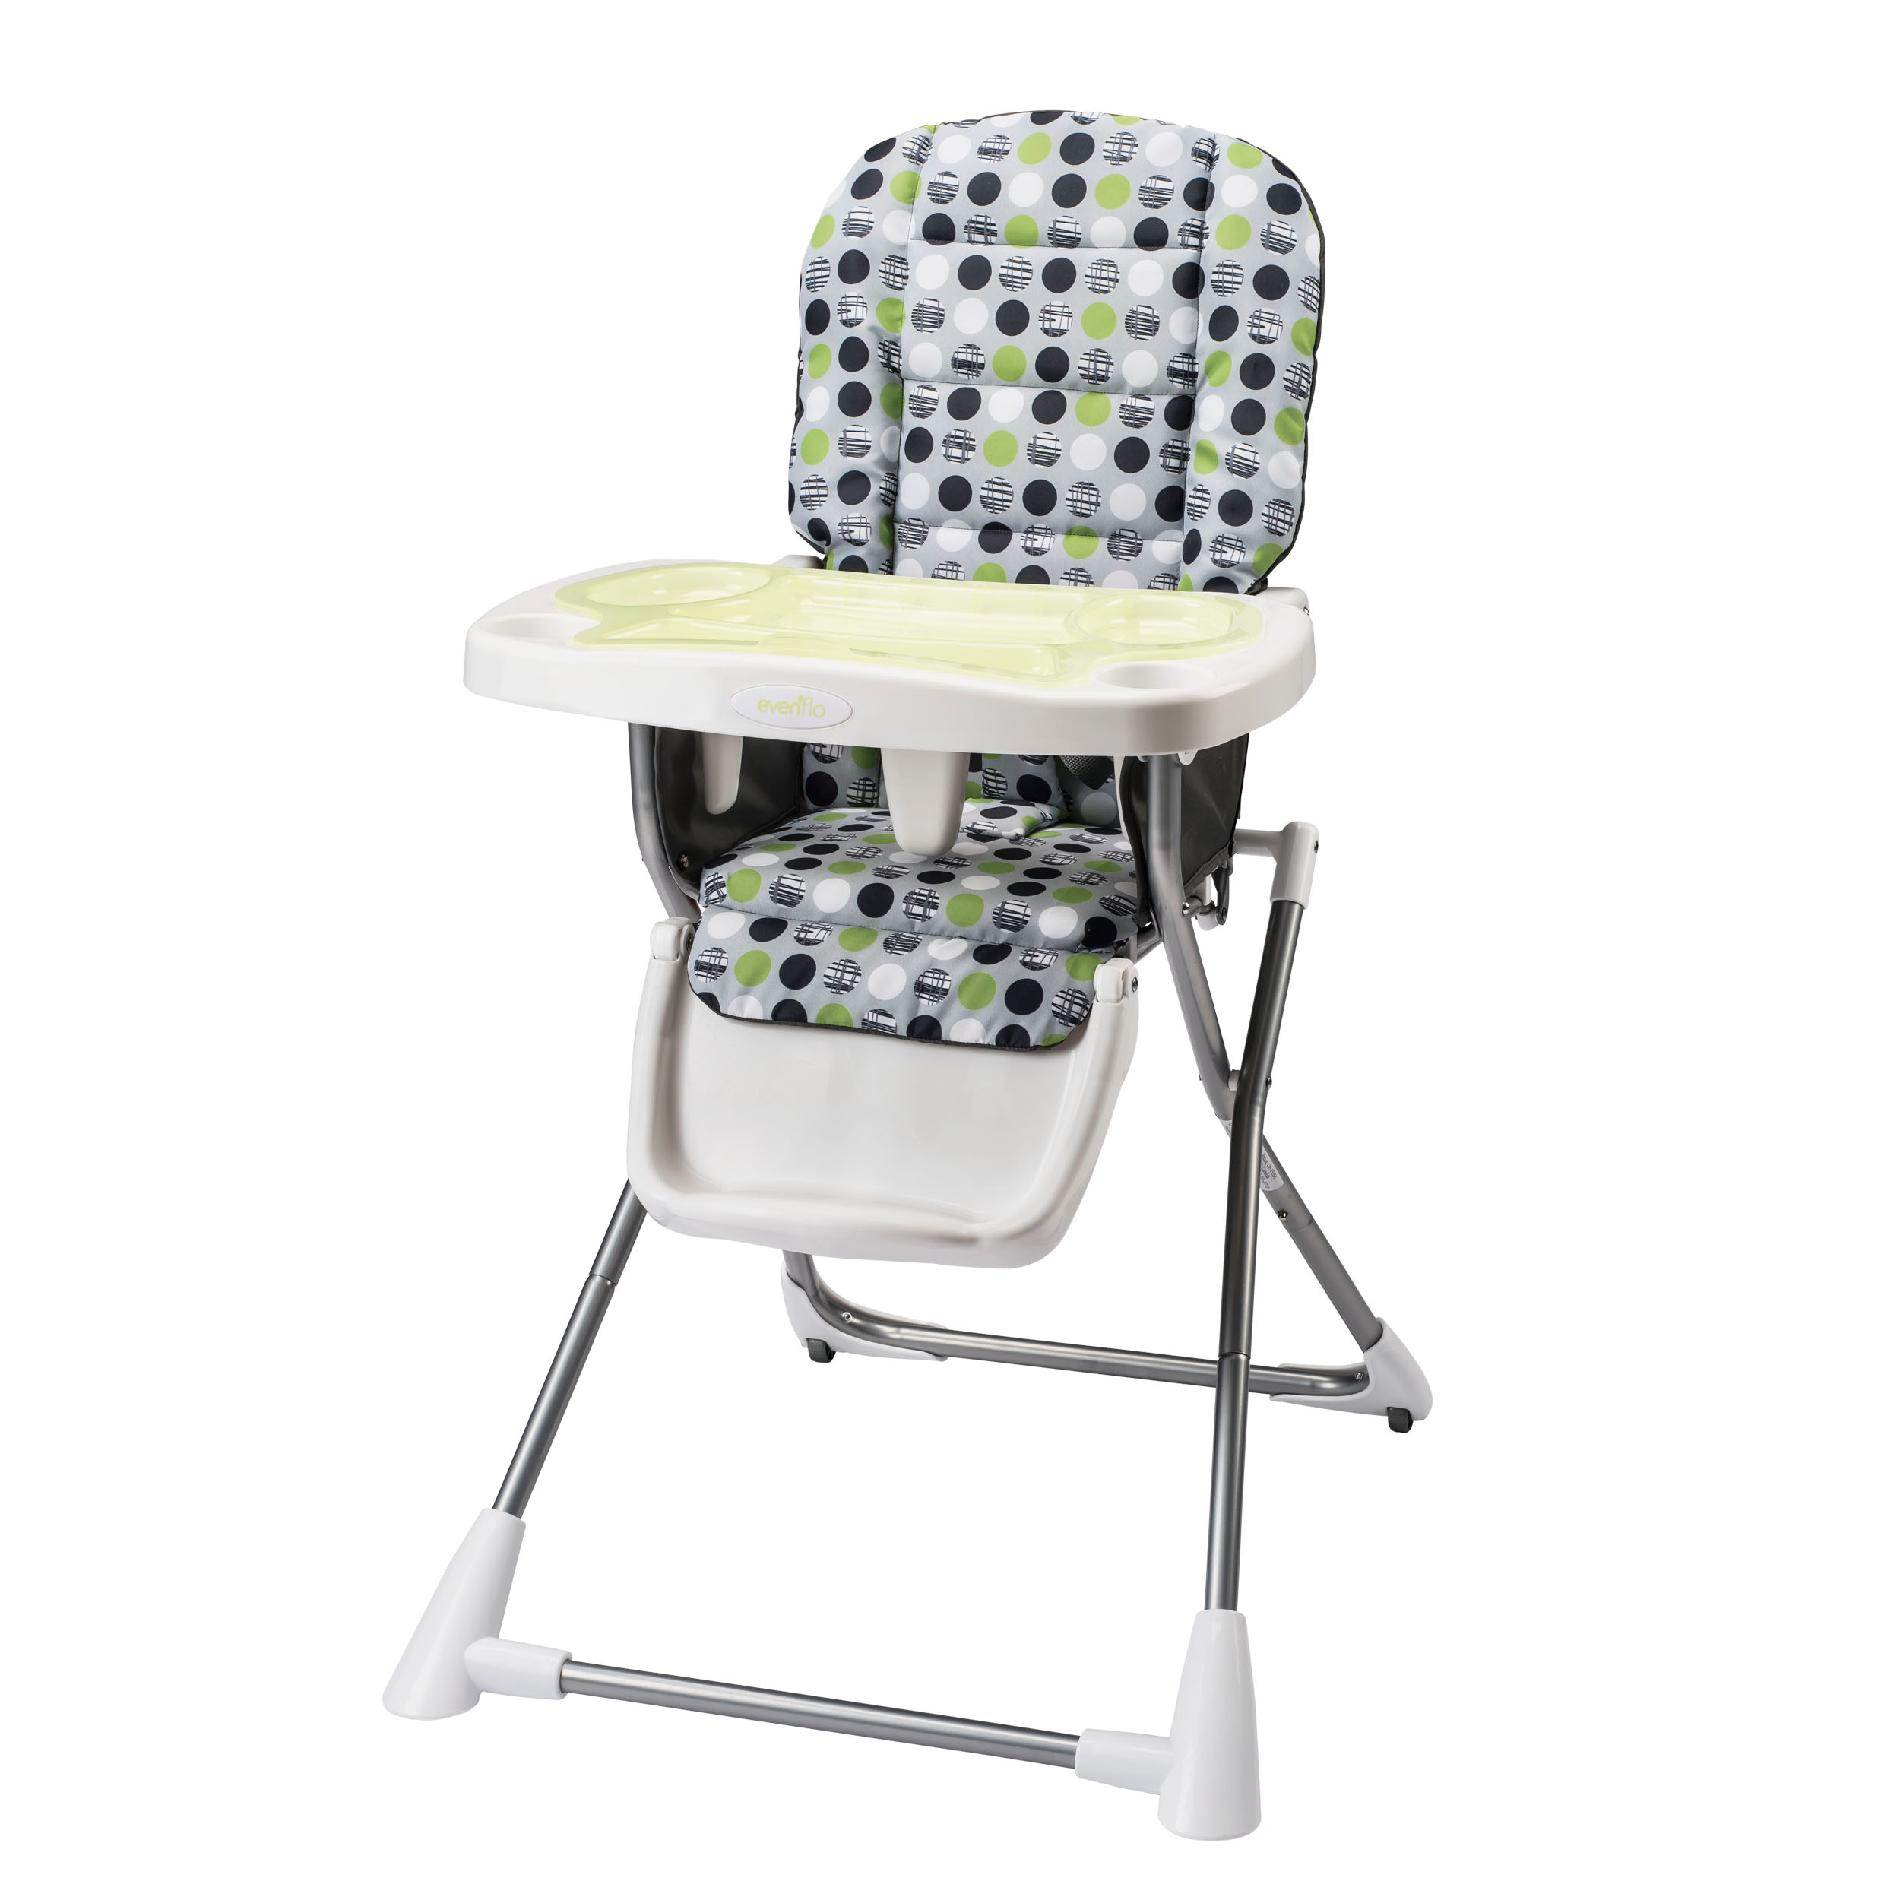 Evenflo Compact Fold High Chair Evenflo Compact Fold High Chair Lima Baby Baby Feeding